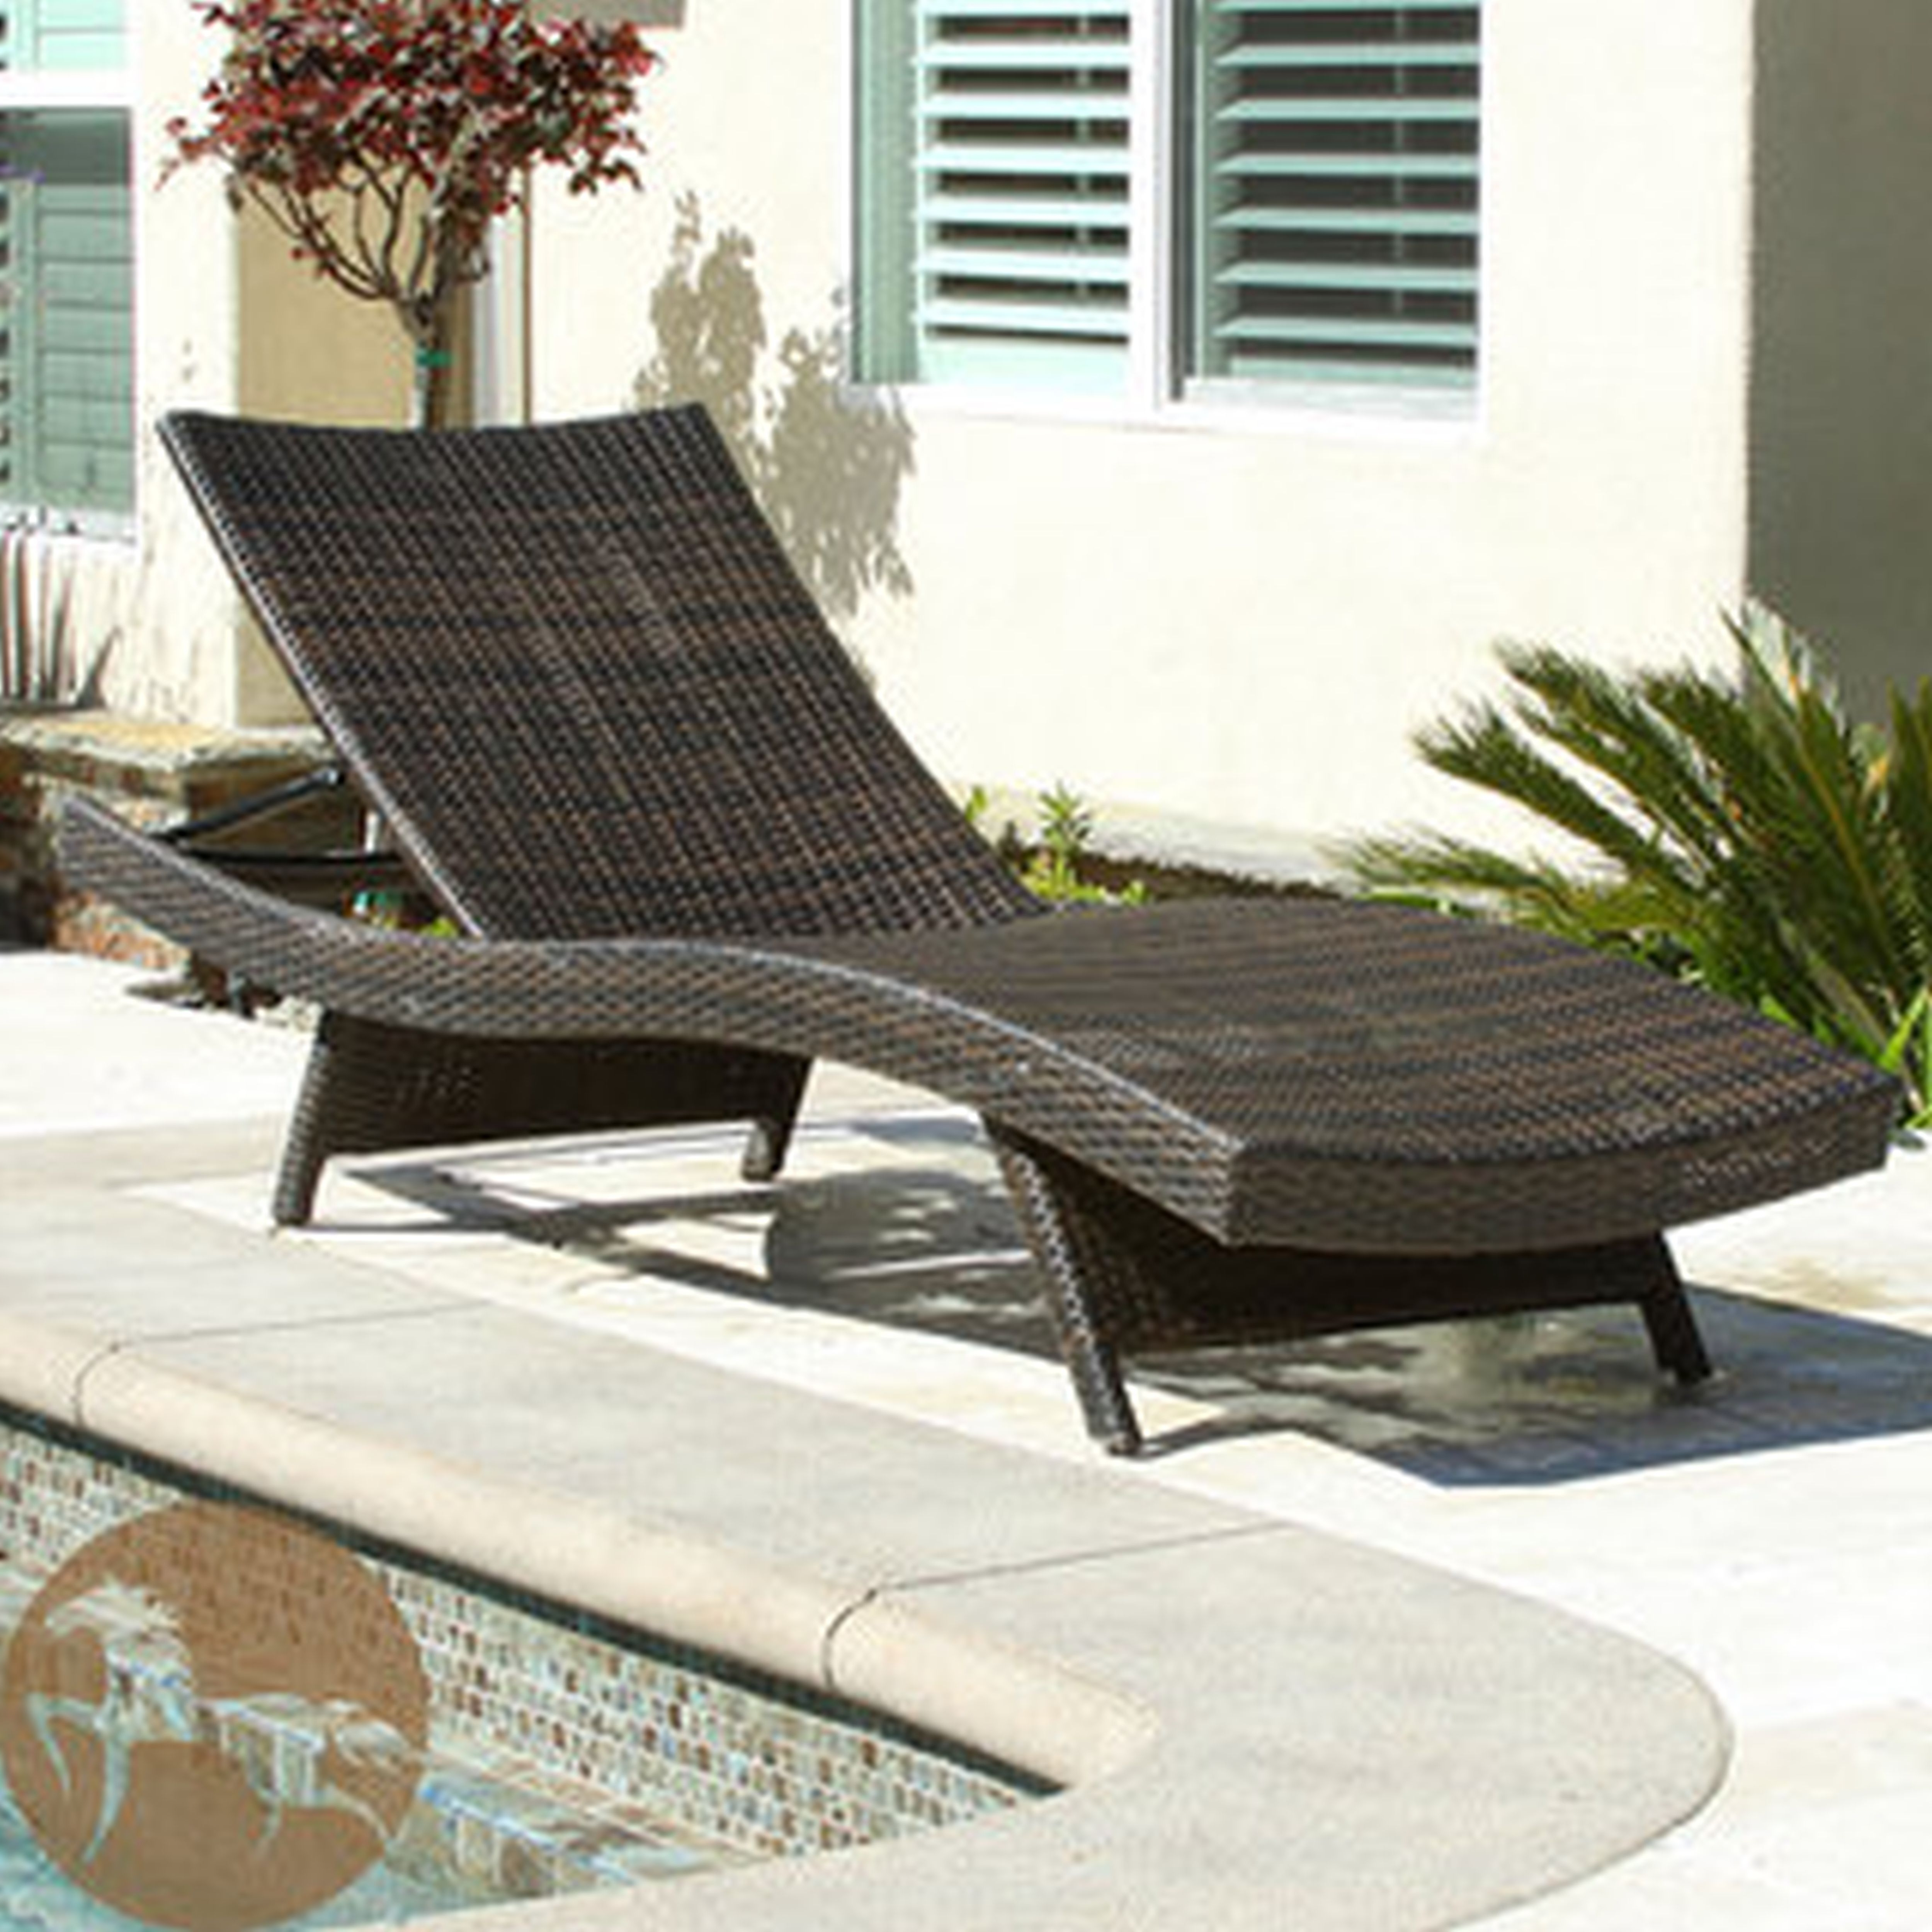 Widely Used Outdoor : Patio Chaise Lounge Chairs Pool Lounge Chairs Chaise Throughout Outdoor Pool Chaise Lounge Chairs (View 5 of 15)